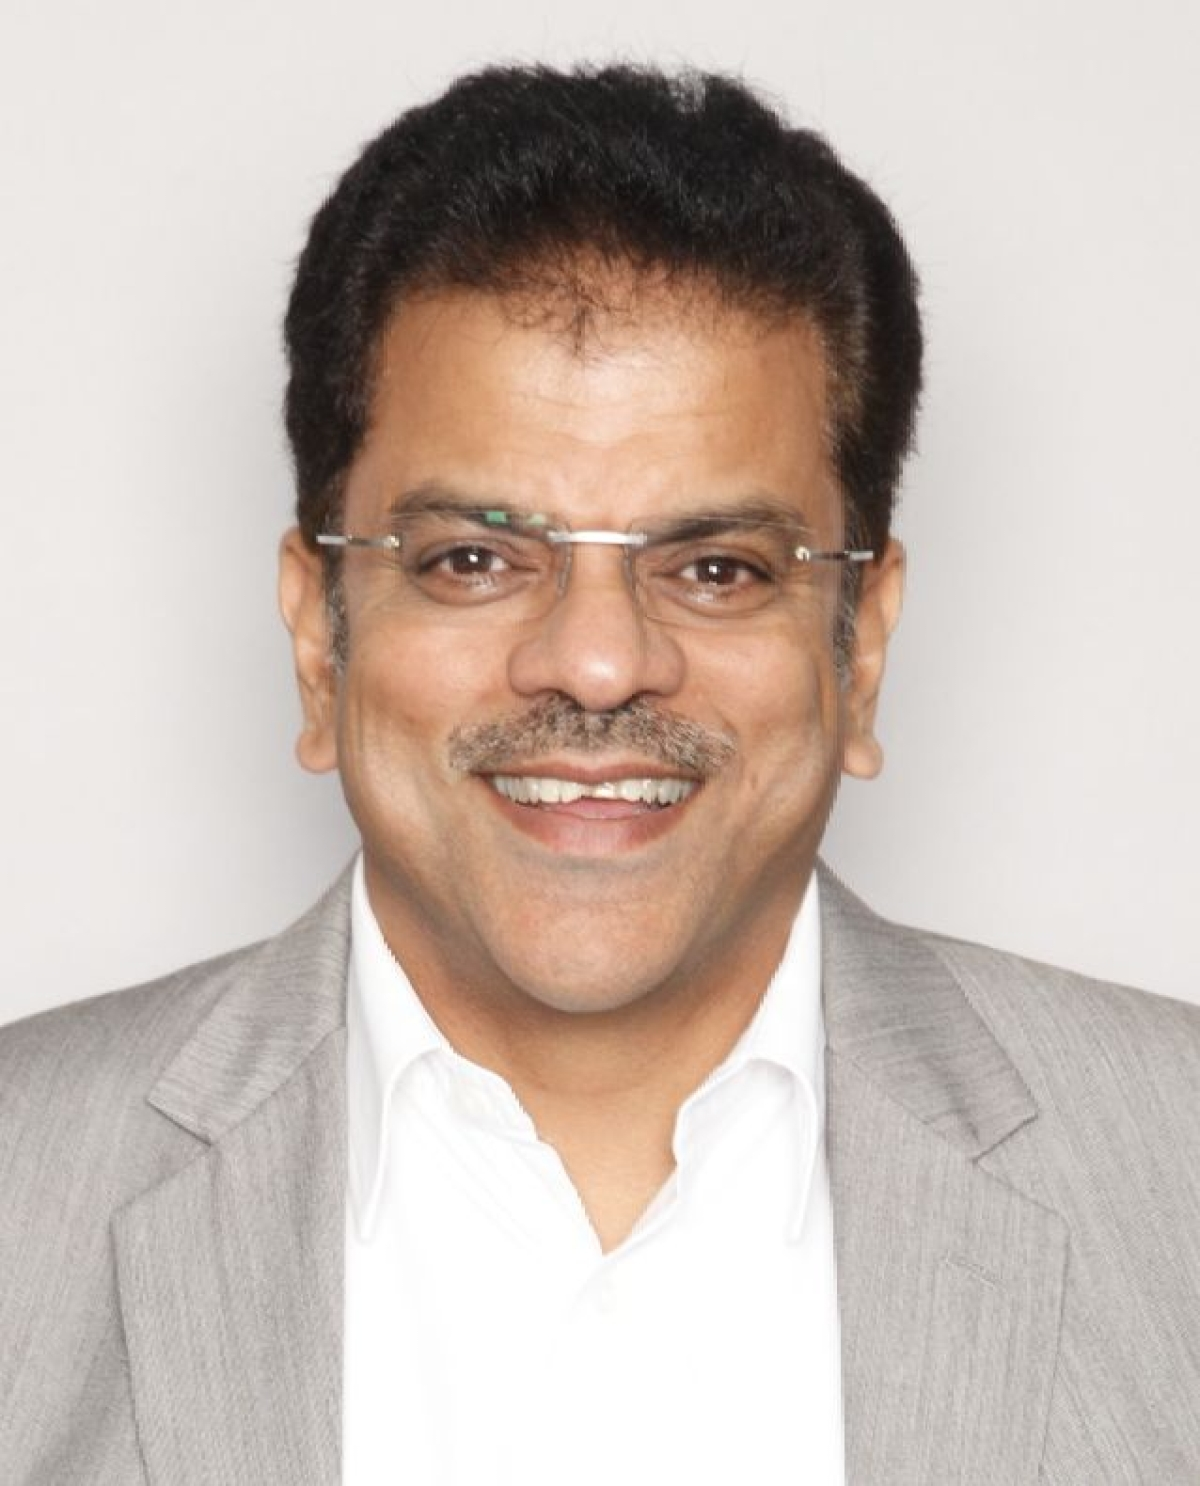 Rohit Ohri, group chairman and chief executive officer, FCB India